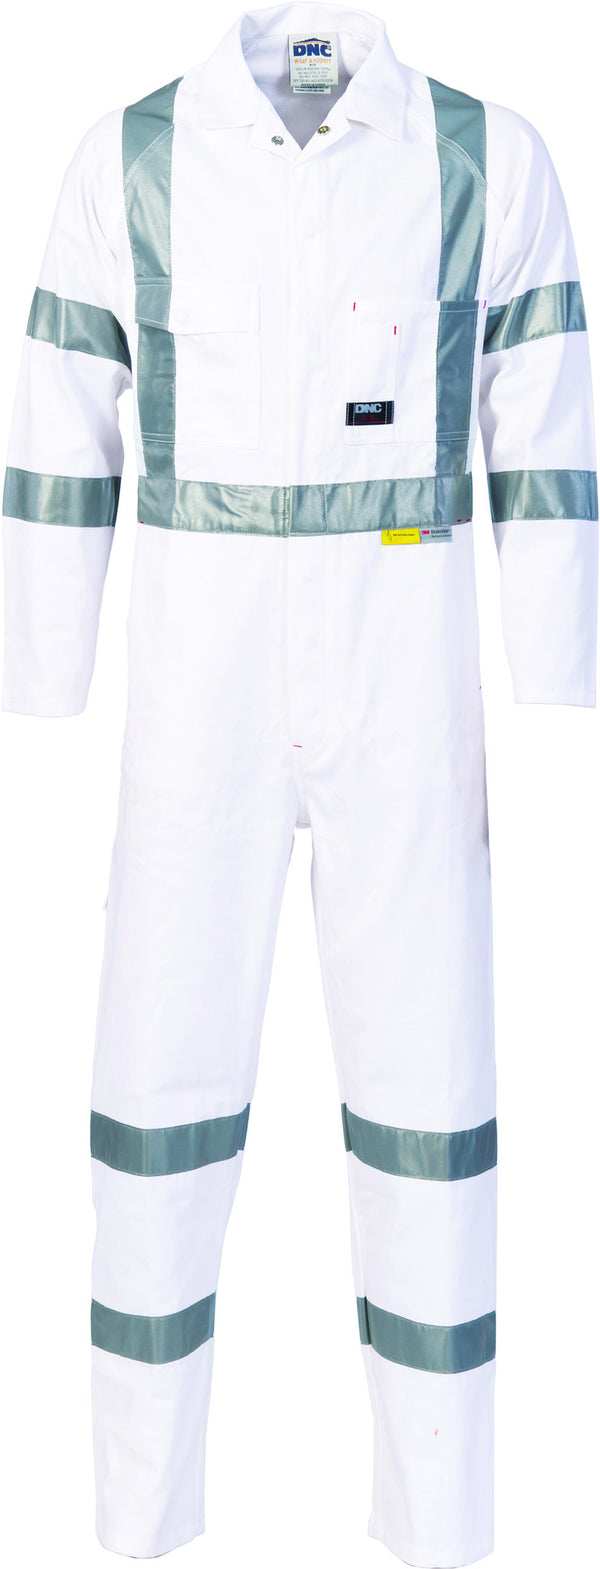 RTA Night Worker Coverall With 3M 8910 Reflective Tape